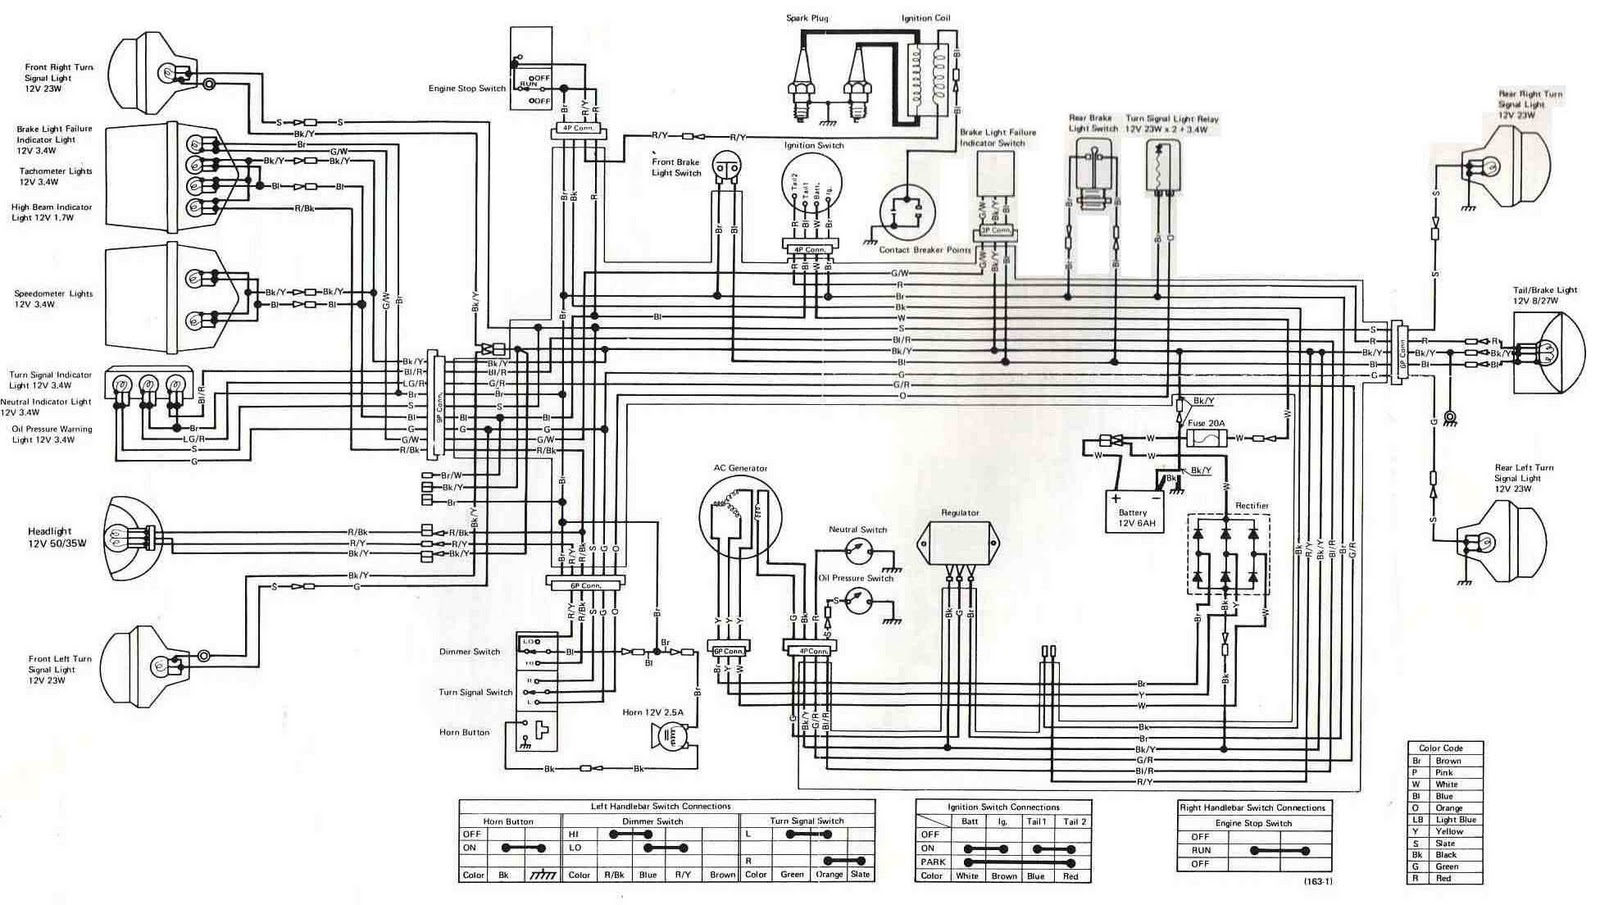 Kawasaki+KZ400+1975+Electrical+Wiring+Diagram kawasaki wiring diagram motorcycle wiring diagrams \u2022 free wiring kawasaki mule wiring diagram free at couponss.co